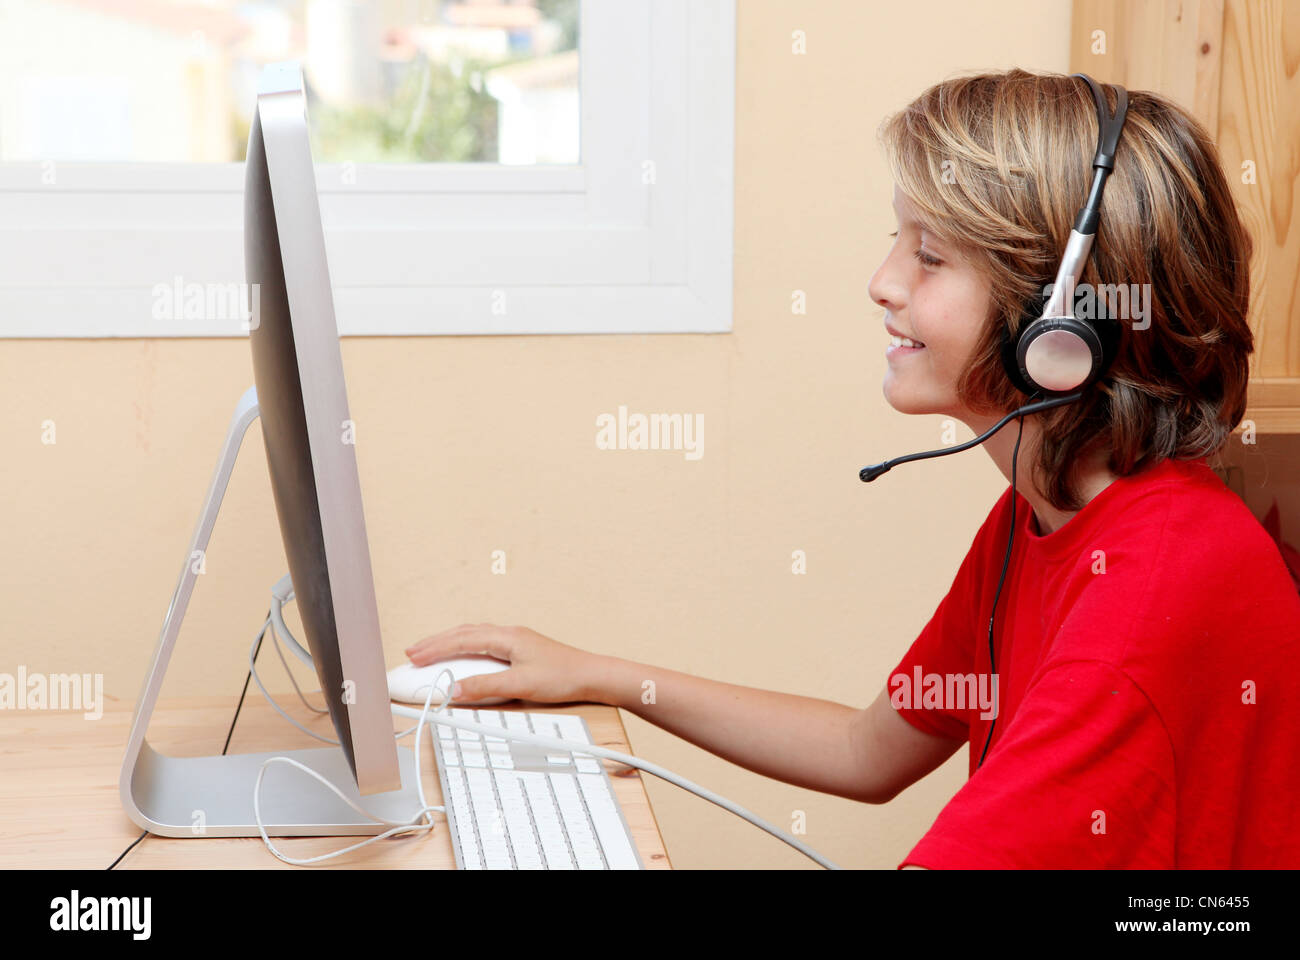 child with headphones or earphones listening to music or chatting on home or school pc computer - Stock Image